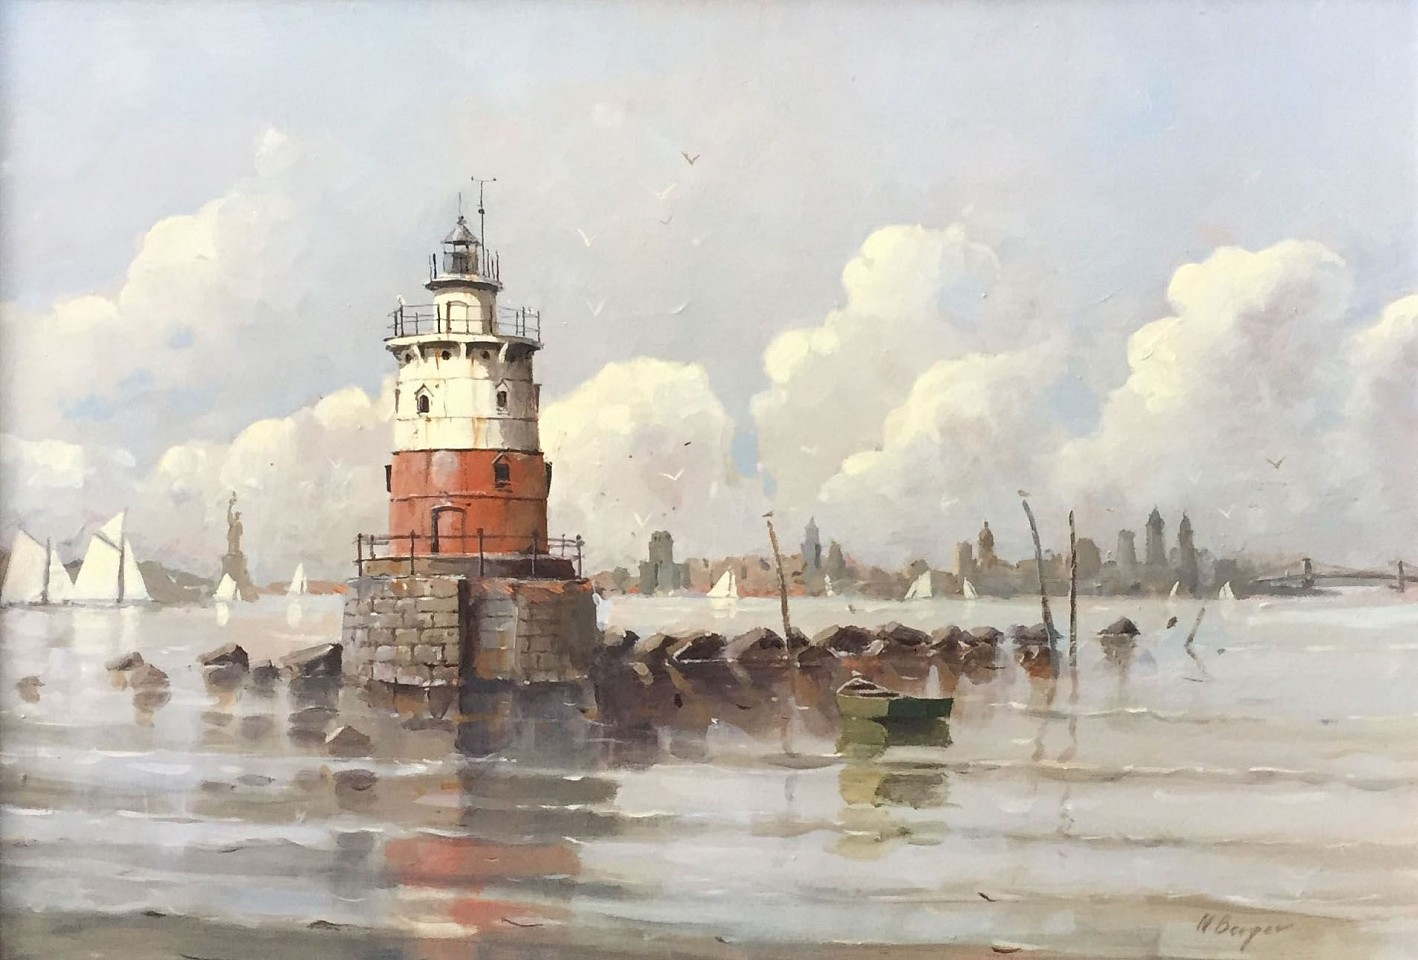 Nicholas Berger ,   Robbins Reef Light: Quiet Sentry in New York Bay  ,  2017     oil on panel ,  11 x 16 in. (27.9 x 40.6 cm)     NB170901